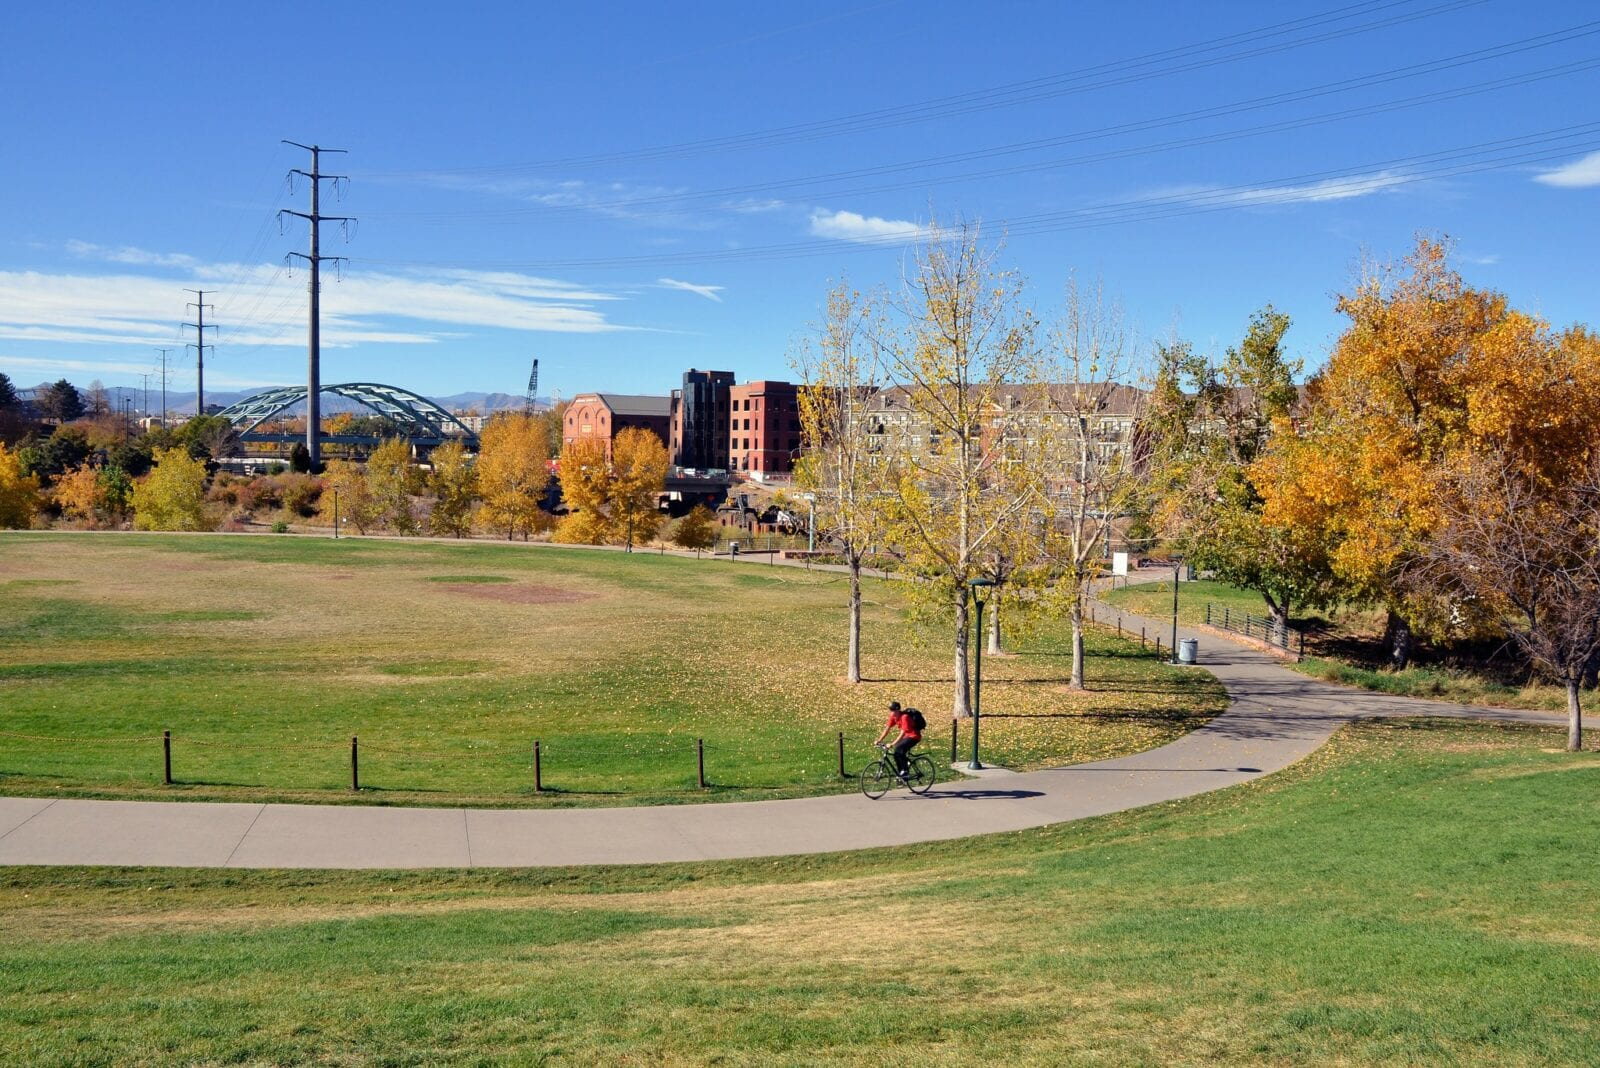 Image of a biker in Commons Park in Denver, Colorado